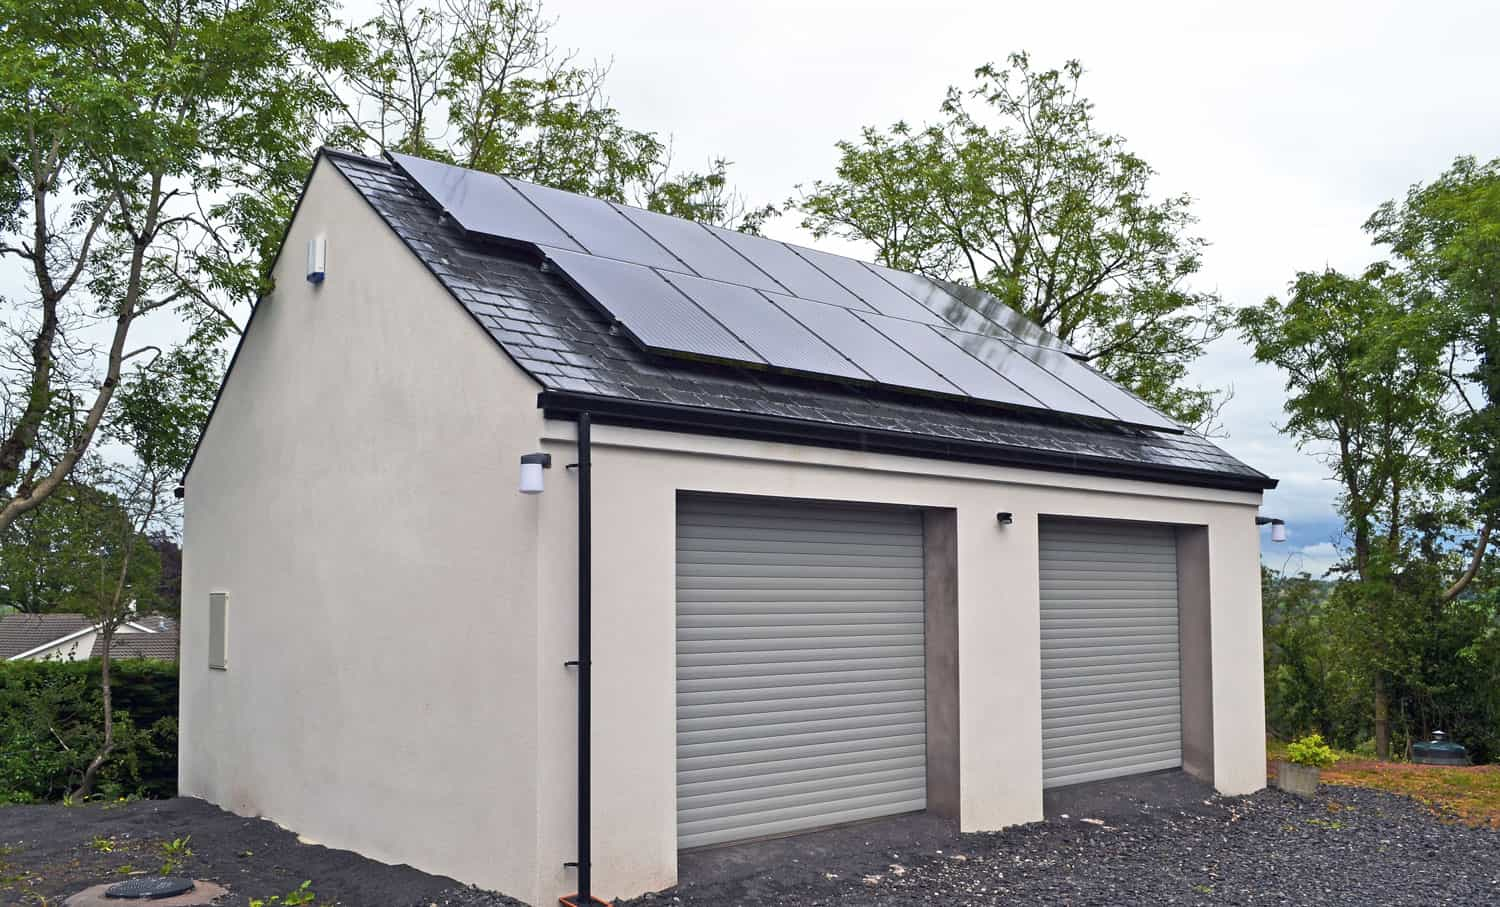 Fleming Dwelling - Typical Double Garage With Solar Panels